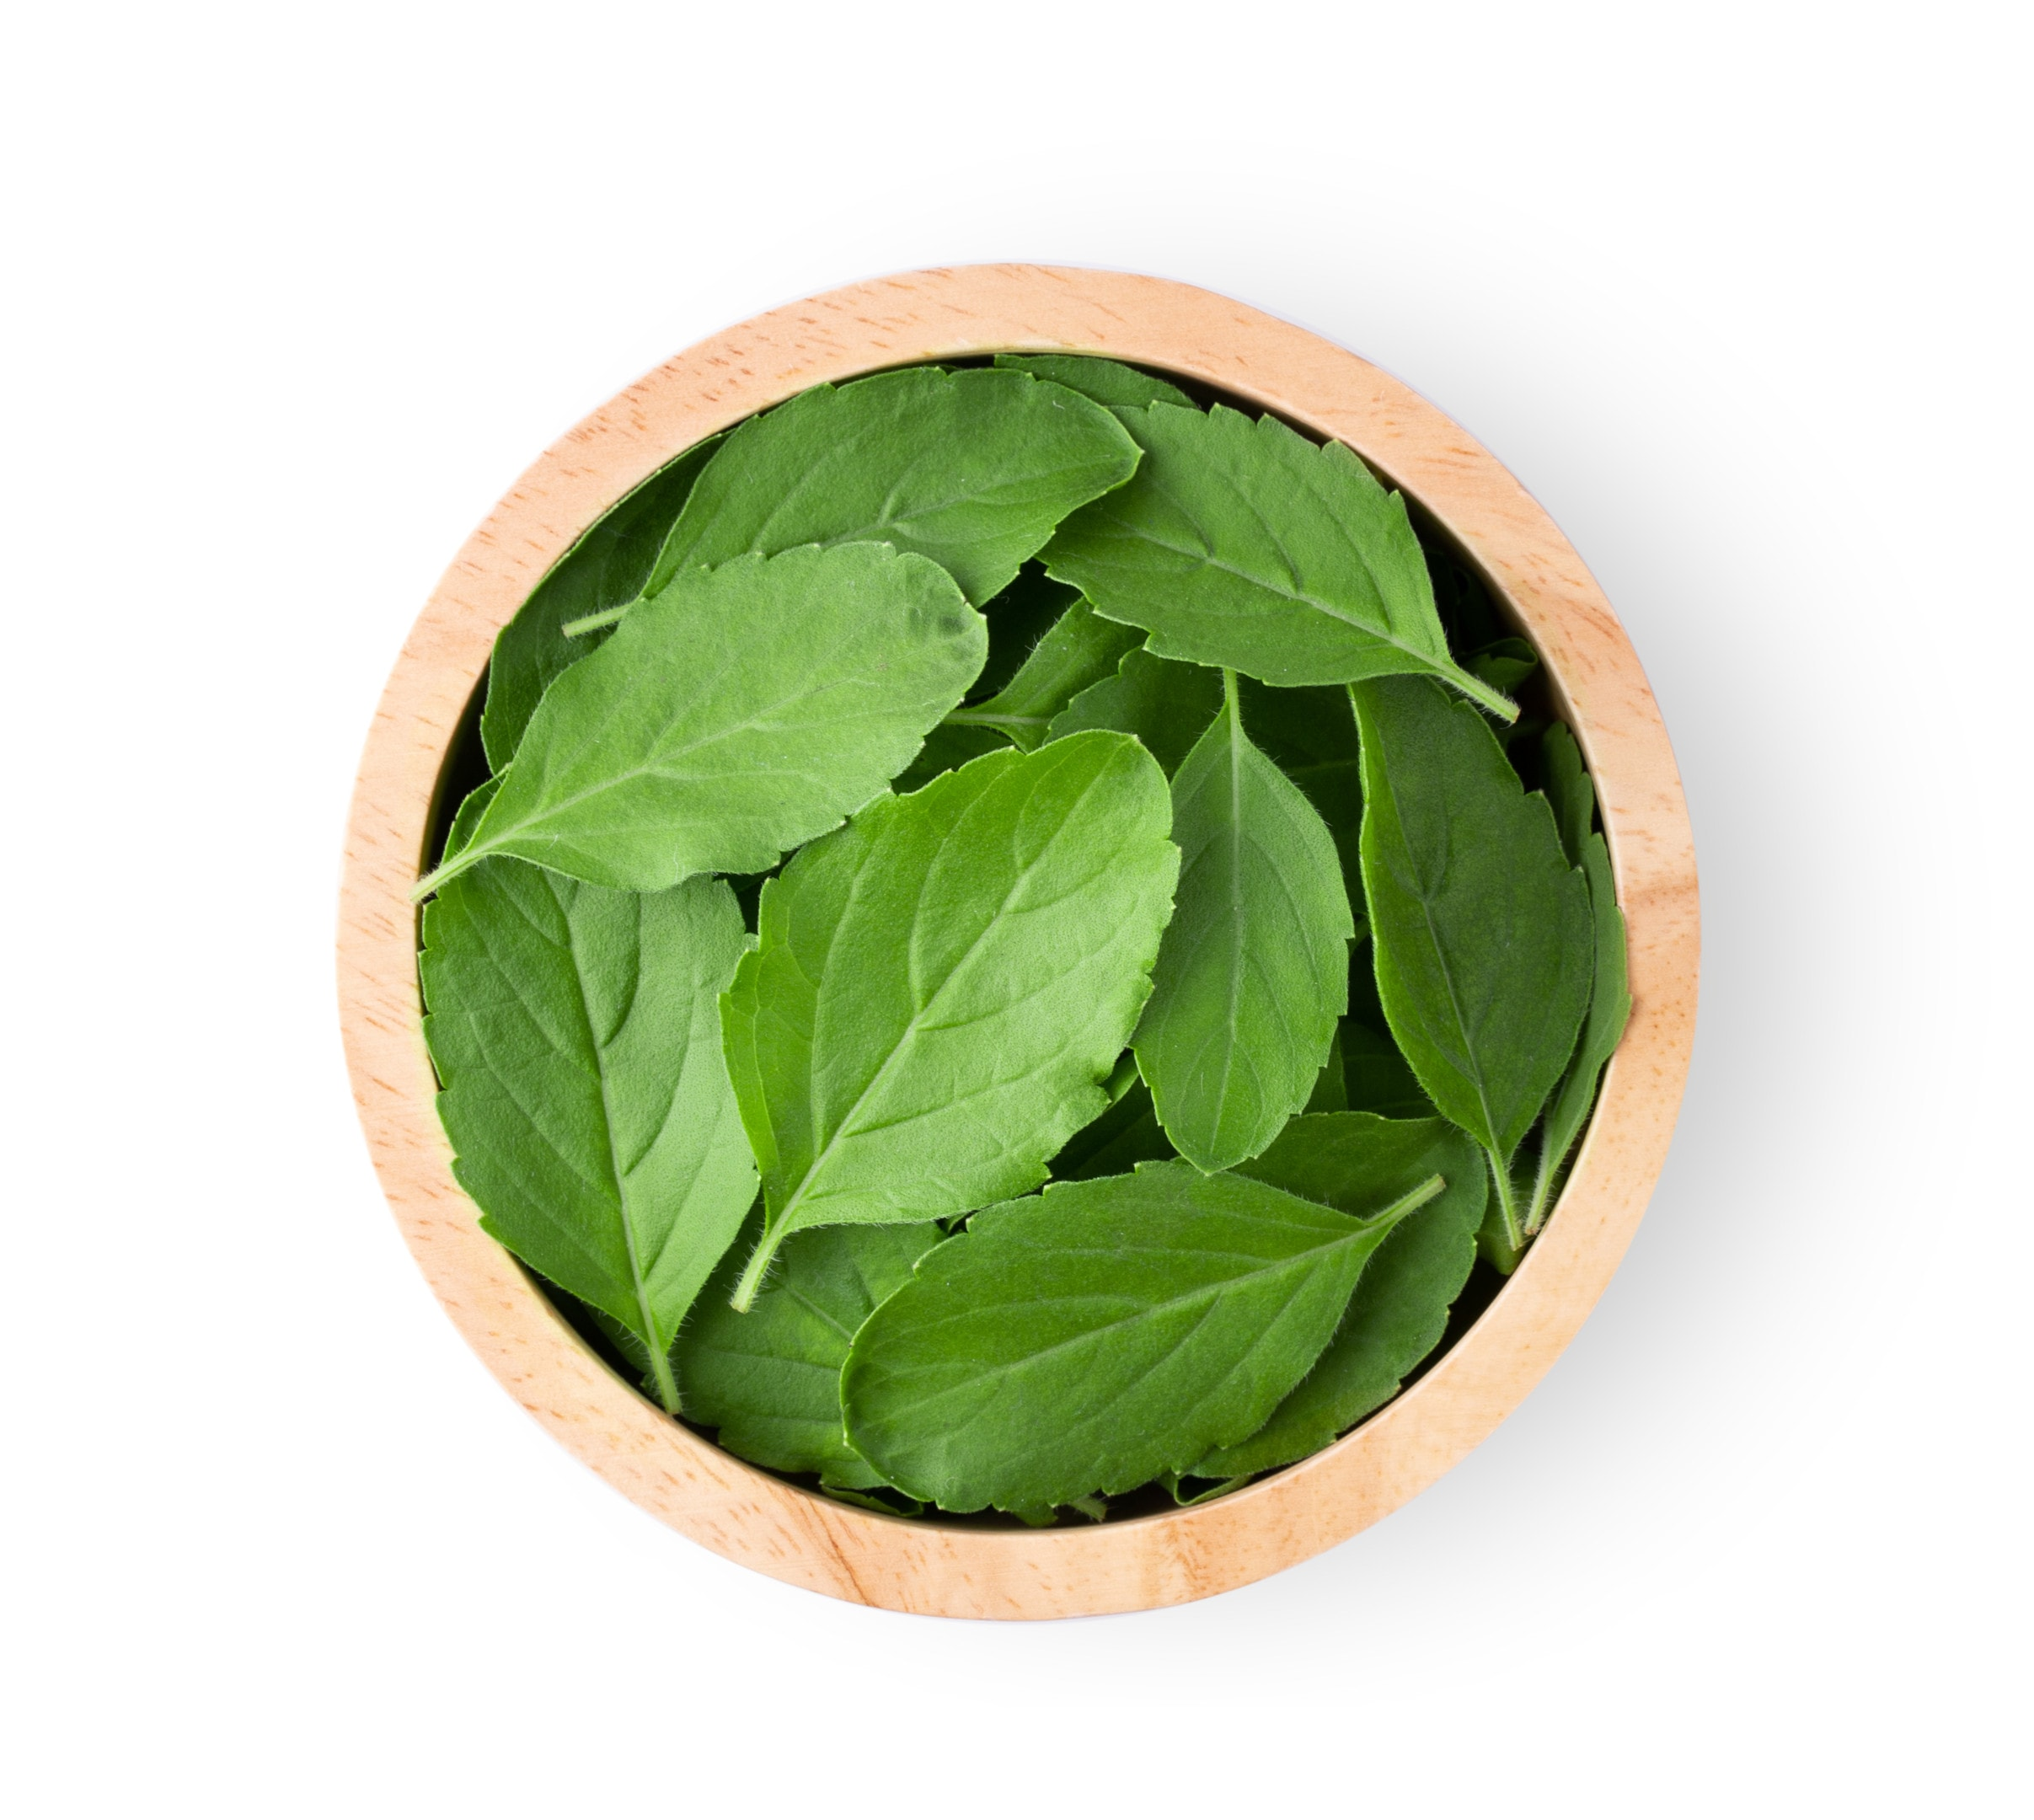 Basil leaves in wooden bowl on white table